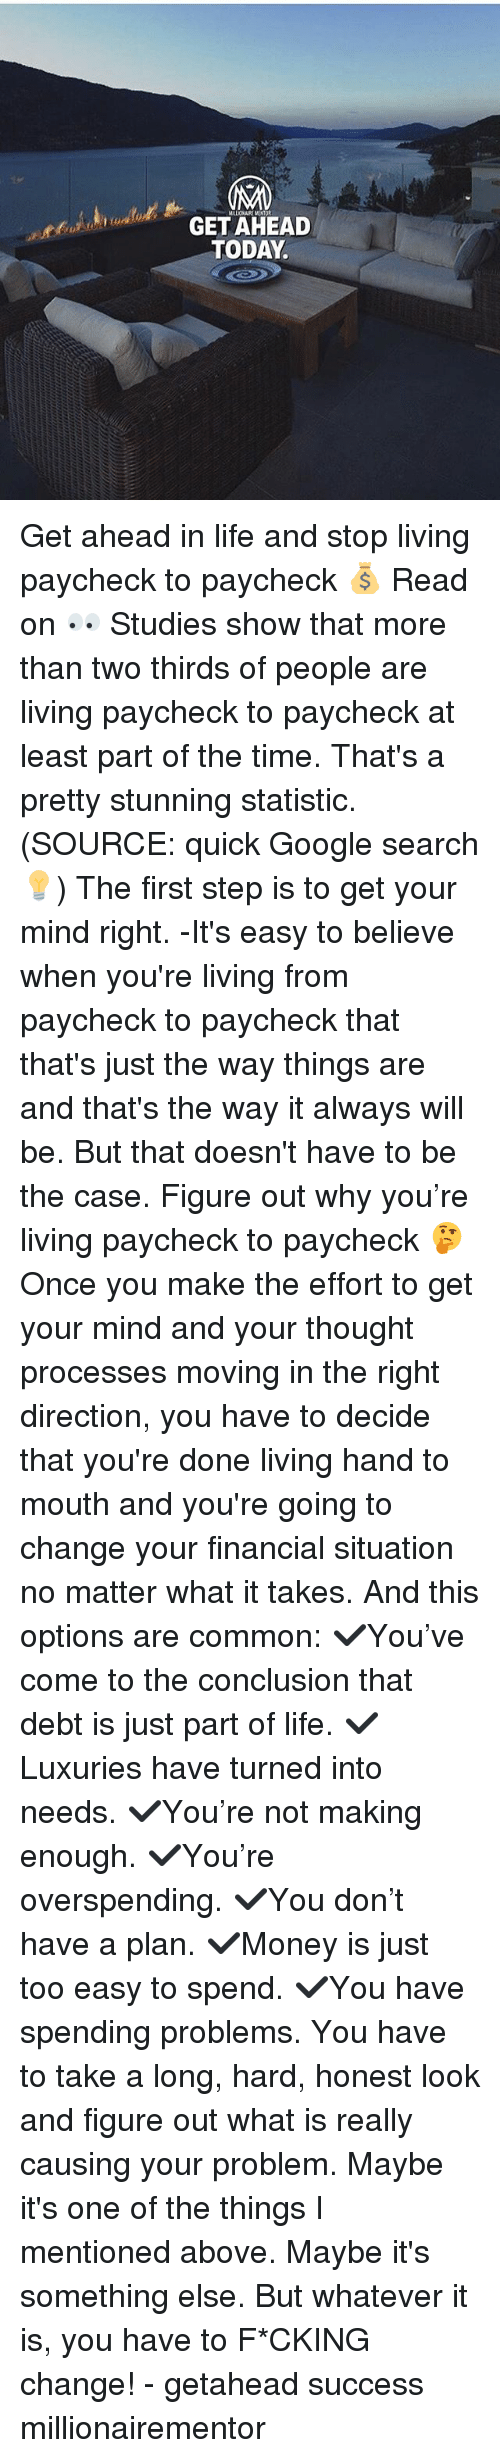 Statistic: GET AHEAD  TODAY Get ahead in life and stop living paycheck to paycheck 💰 Read on 👀 Studies show that more than two thirds of people are living paycheck to paycheck at least part of the time. That's a pretty stunning statistic. (SOURCE: quick Google search💡) The first step is to get your mind right. -It's easy to believe when you're living from paycheck to paycheck that that's just the way things are and that's the way it always will be. But that doesn't have to be the case. Figure out why you're living paycheck to paycheck 🤔 Once you make the effort to get your mind and your thought processes moving in the right direction, you have to decide that you're done living hand to mouth and you're going to change your financial situation no matter what it takes. And this options are common: ✔️You've come to the conclusion that debt is just part of life. ✔️Luxuries have turned into needs. ✔️You're not making enough. ✔️You're overspending. ✔️You don't have a plan. ✔️Money is just too easy to spend. ✔️You have spending problems. You have to take a long, hard, honest look and figure out what is really causing your problem. Maybe it's one of the things I mentioned above. Maybe it's something else. But whatever it is, you have to F*CKING change! - getahead success millionairementor